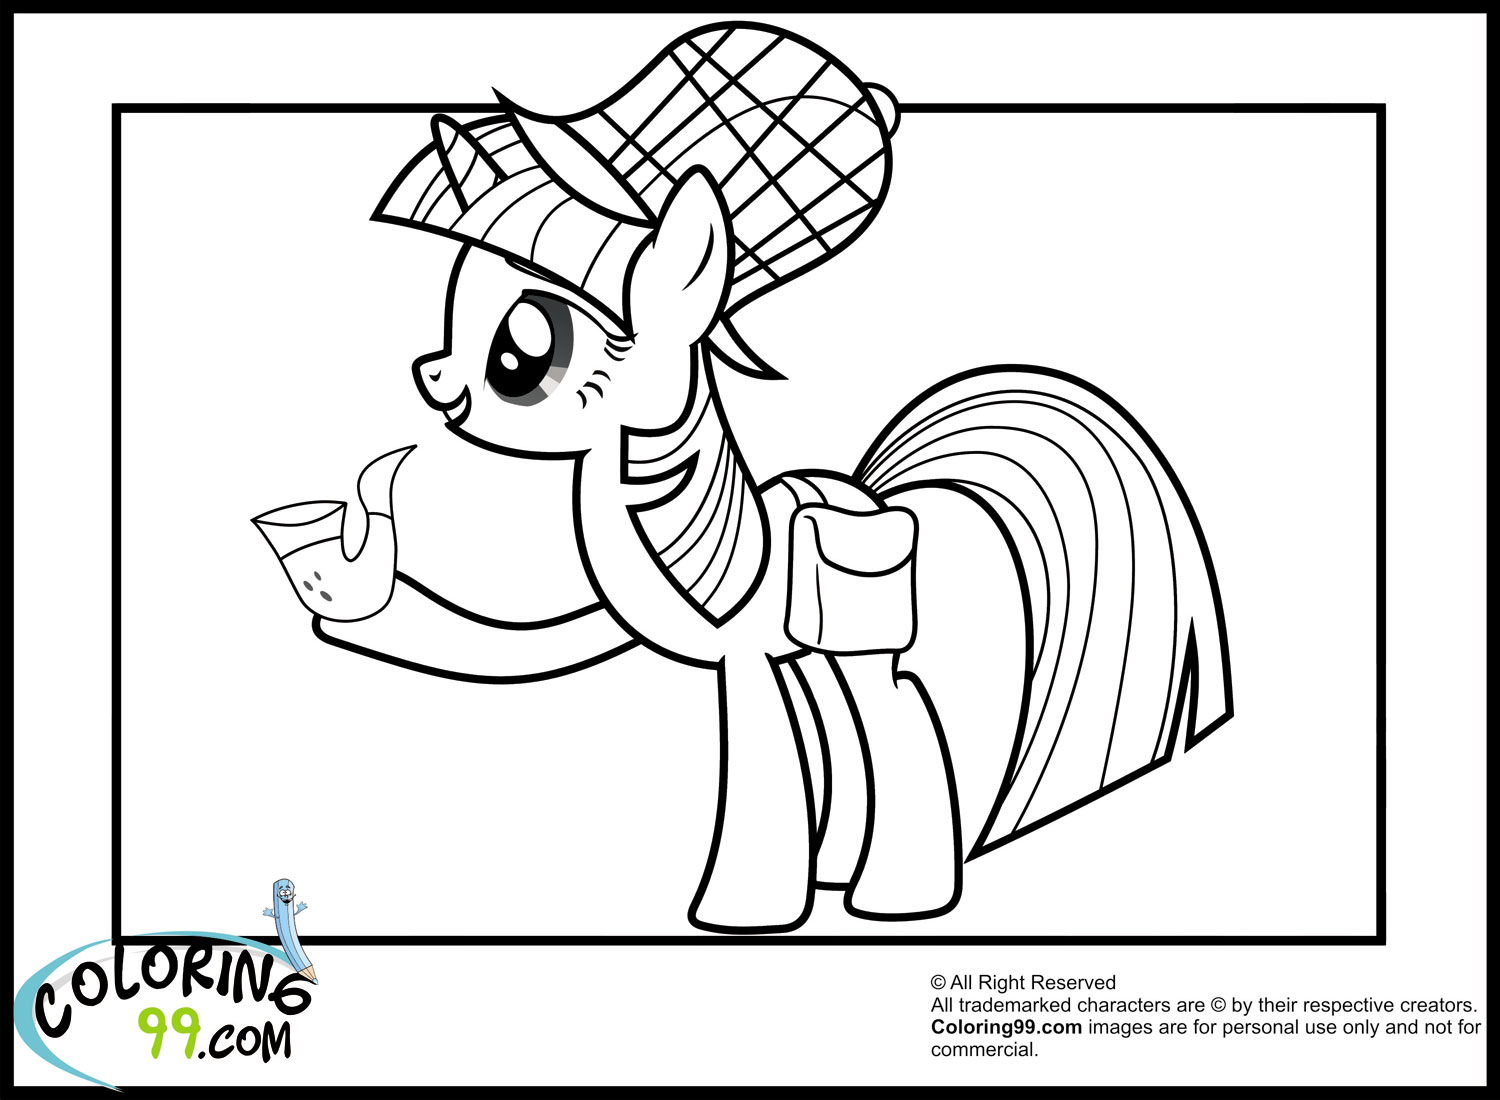 twilight coloring pages - photo#23